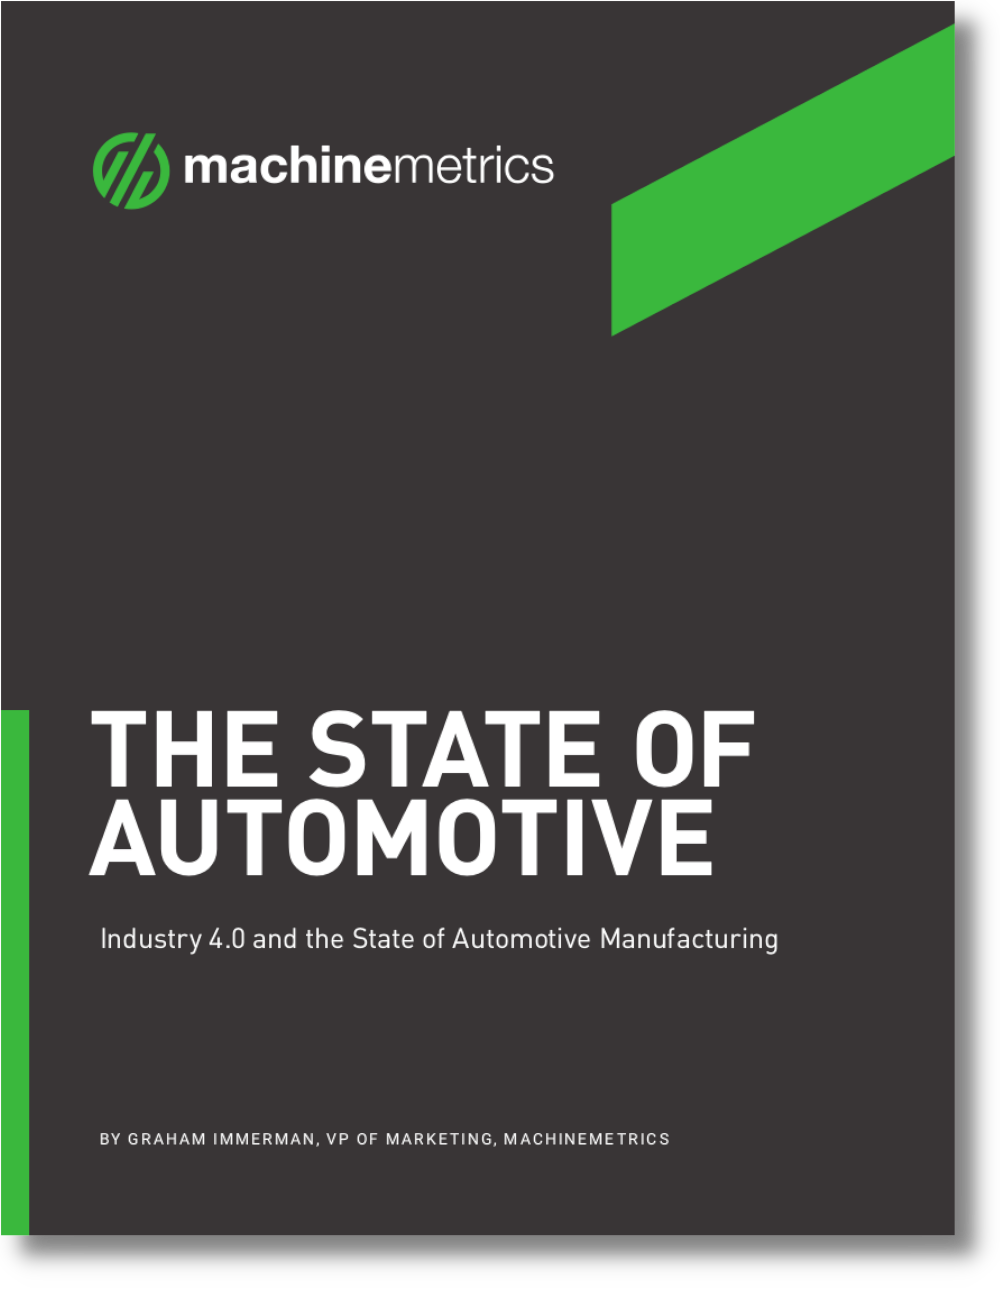 Industry 4.0 and the State of Automotive Manufacturing